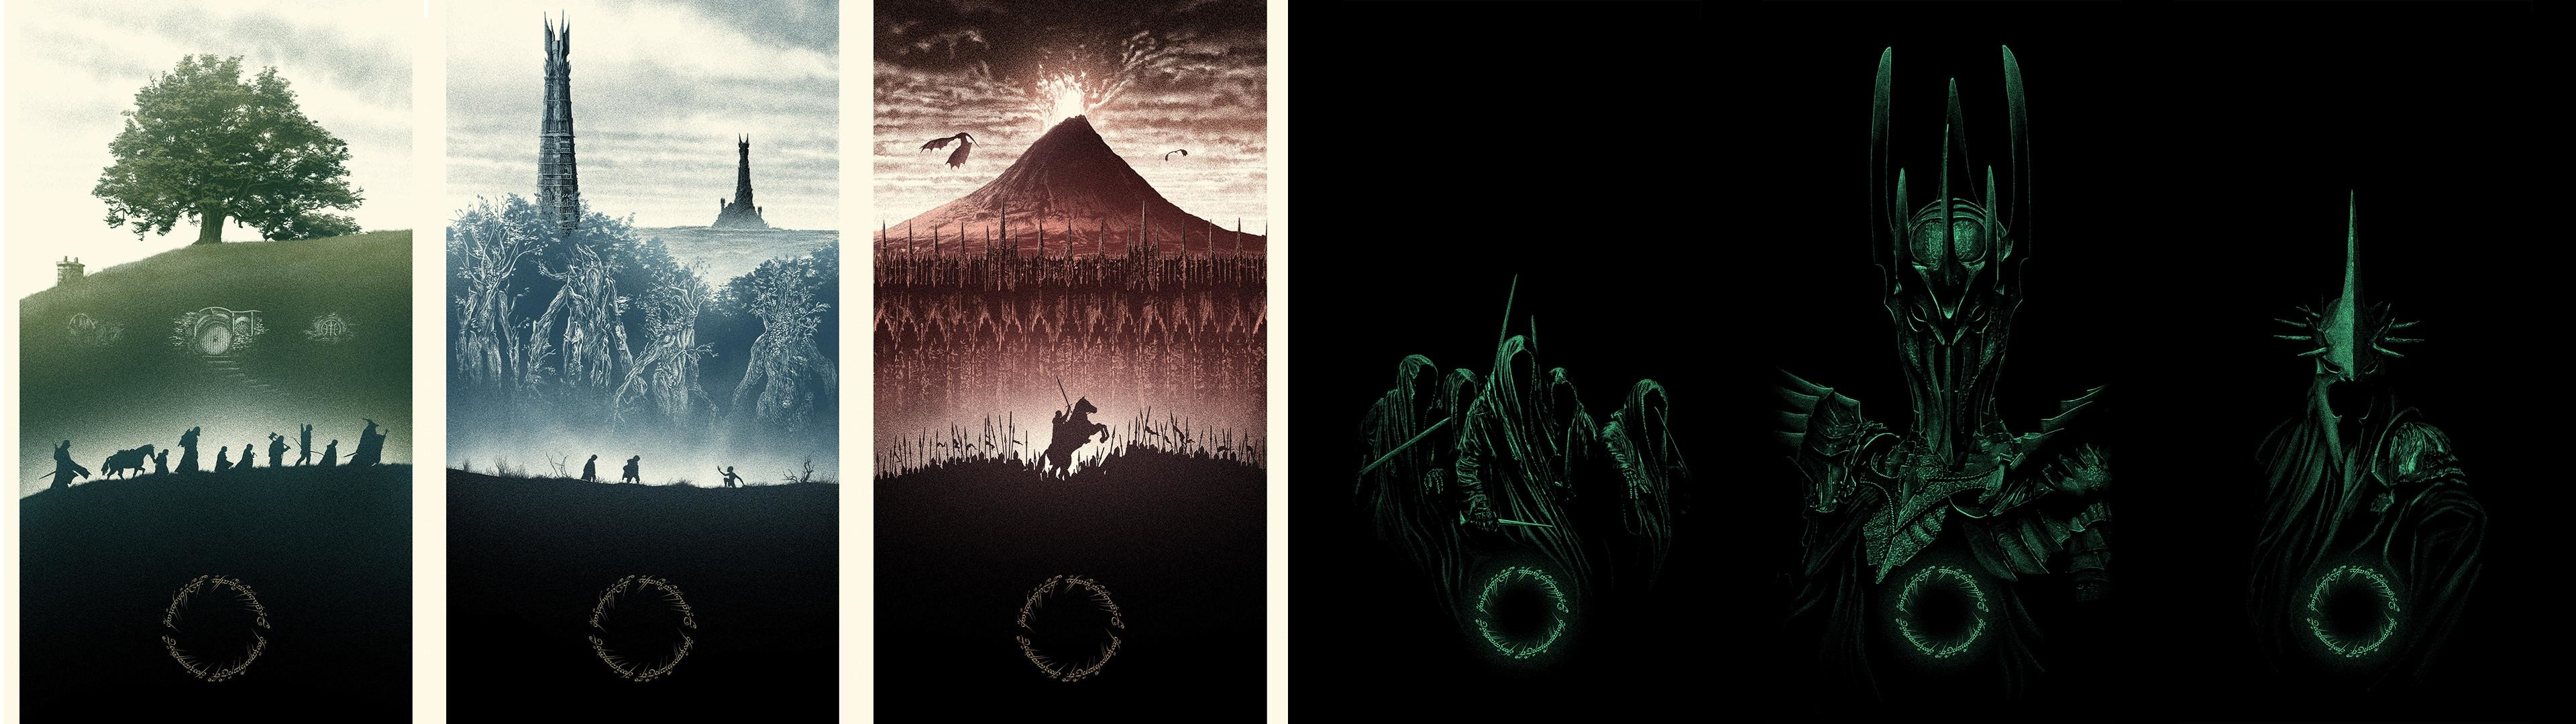 ... Wallpaper Lord of the Rings 84 images